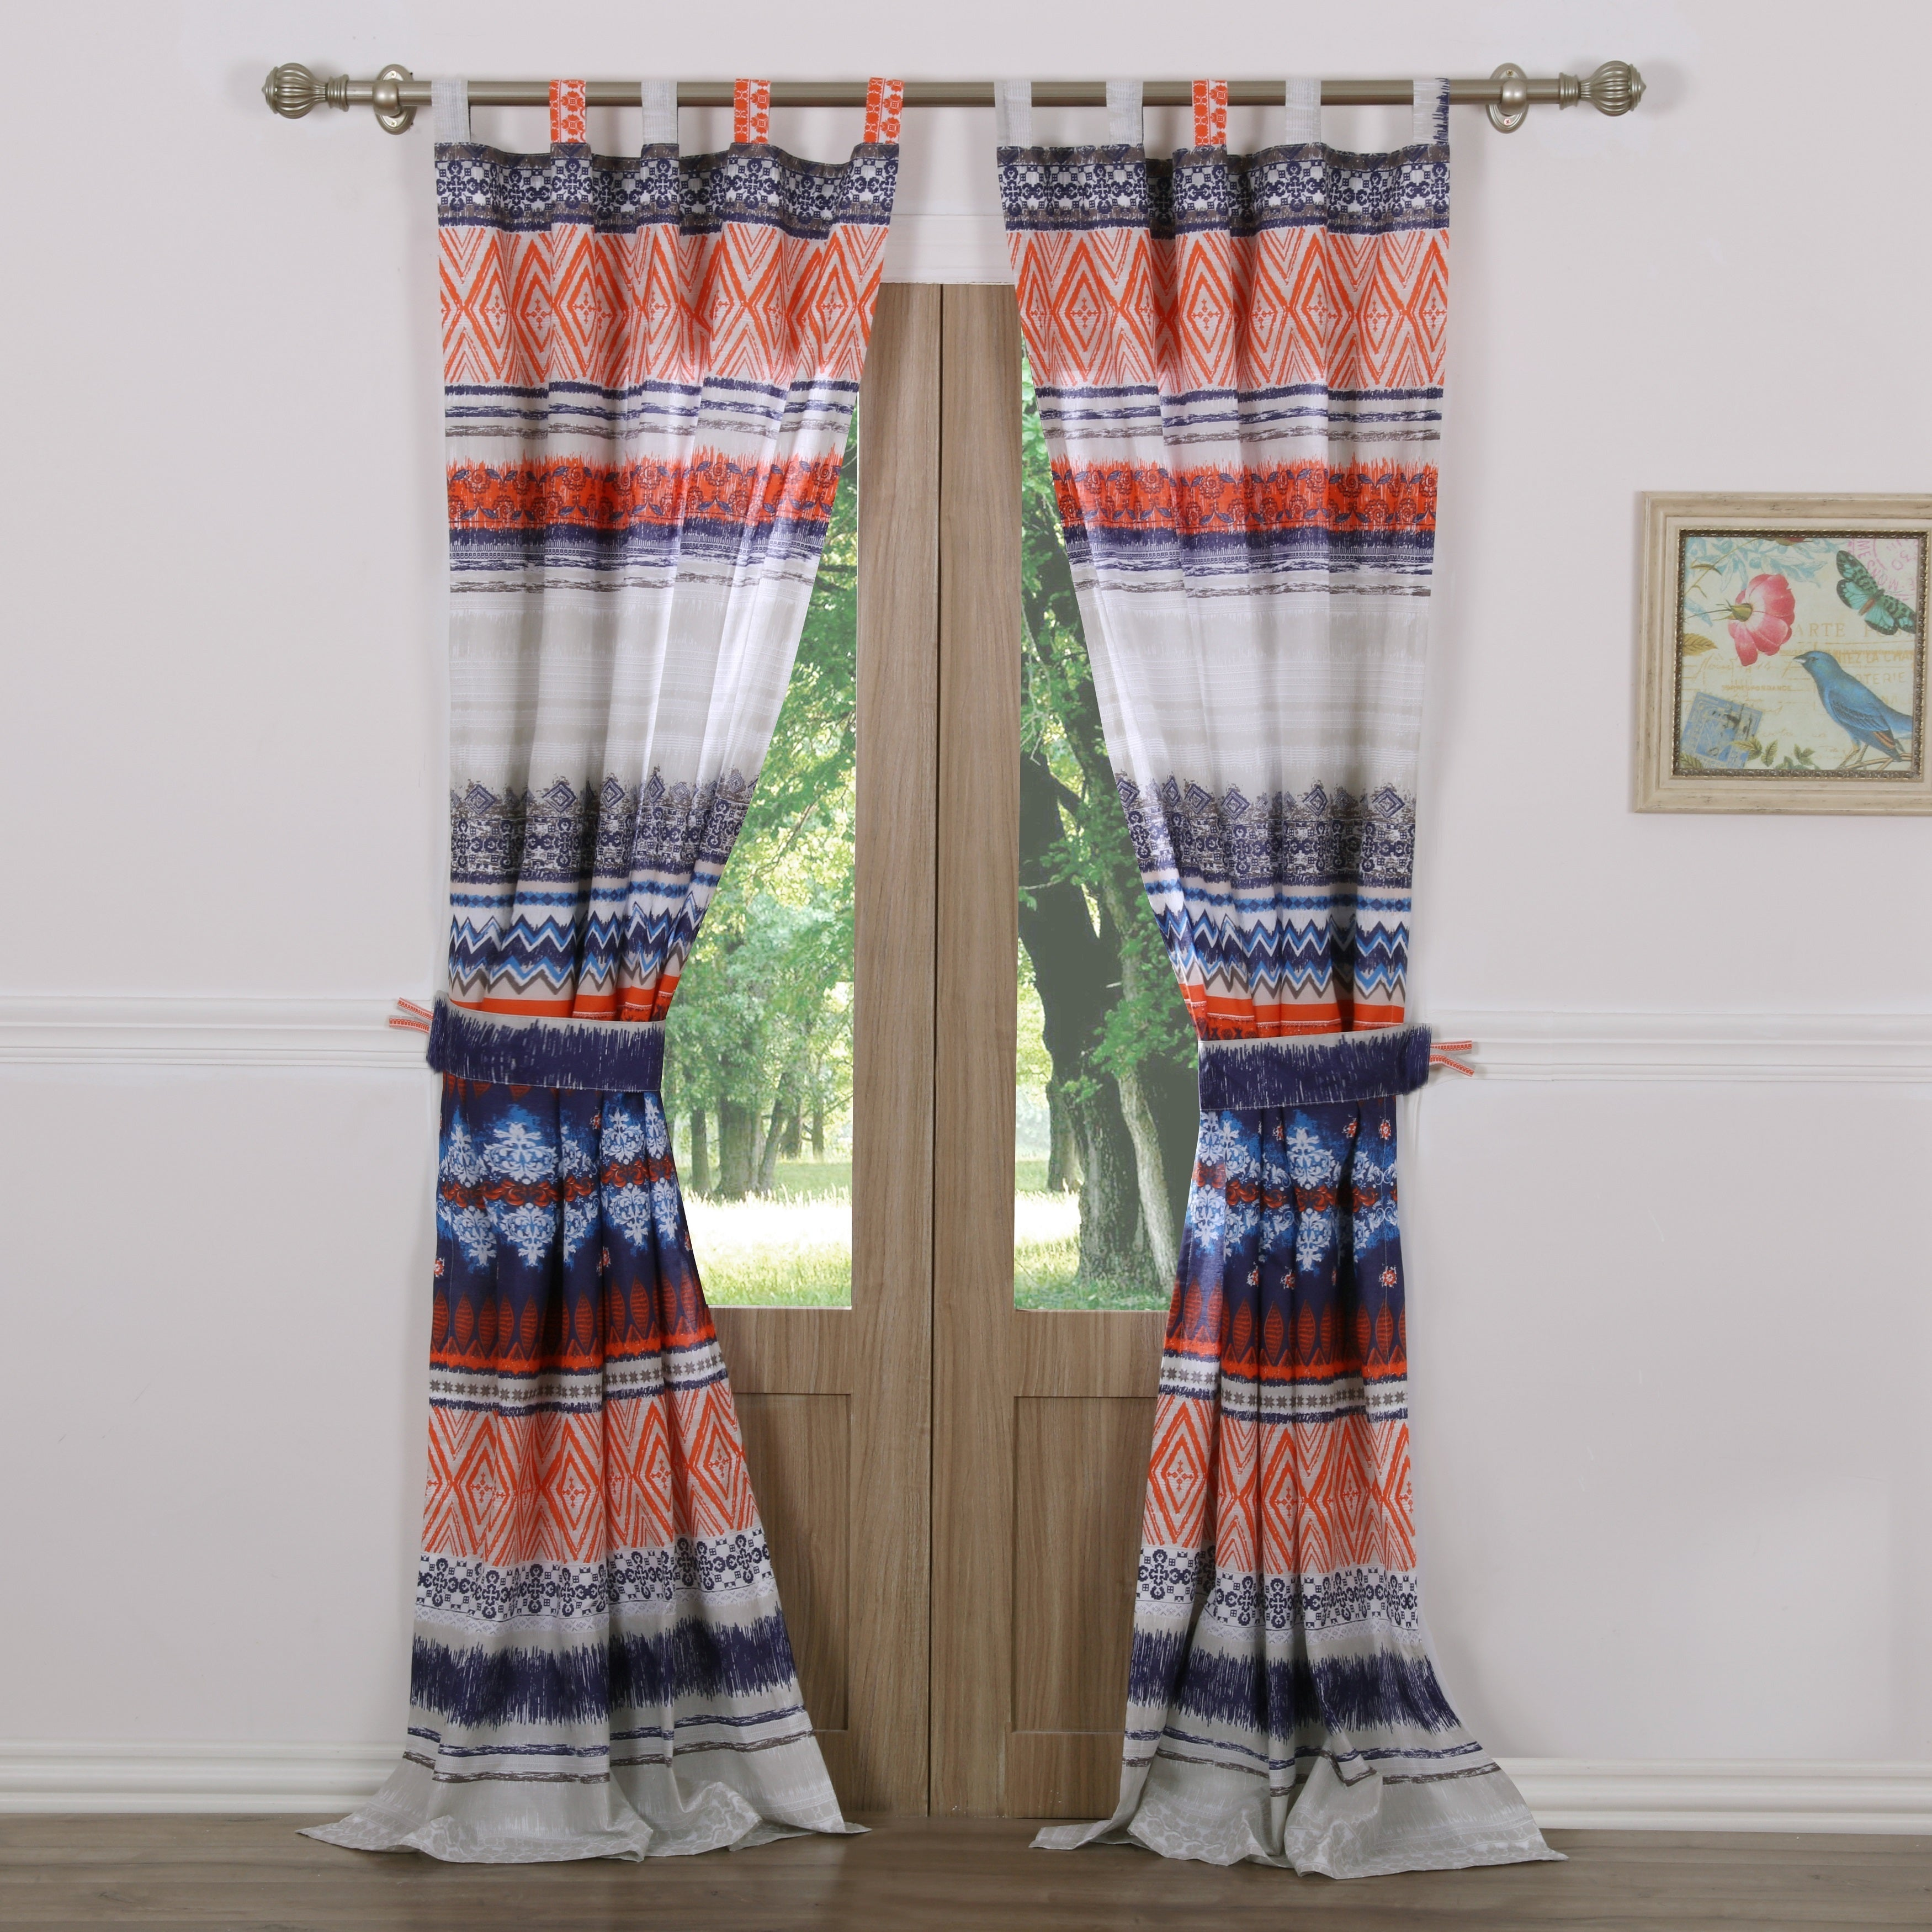 valance of blue curtain fabric awesome shower curtains lovely plaid navy red